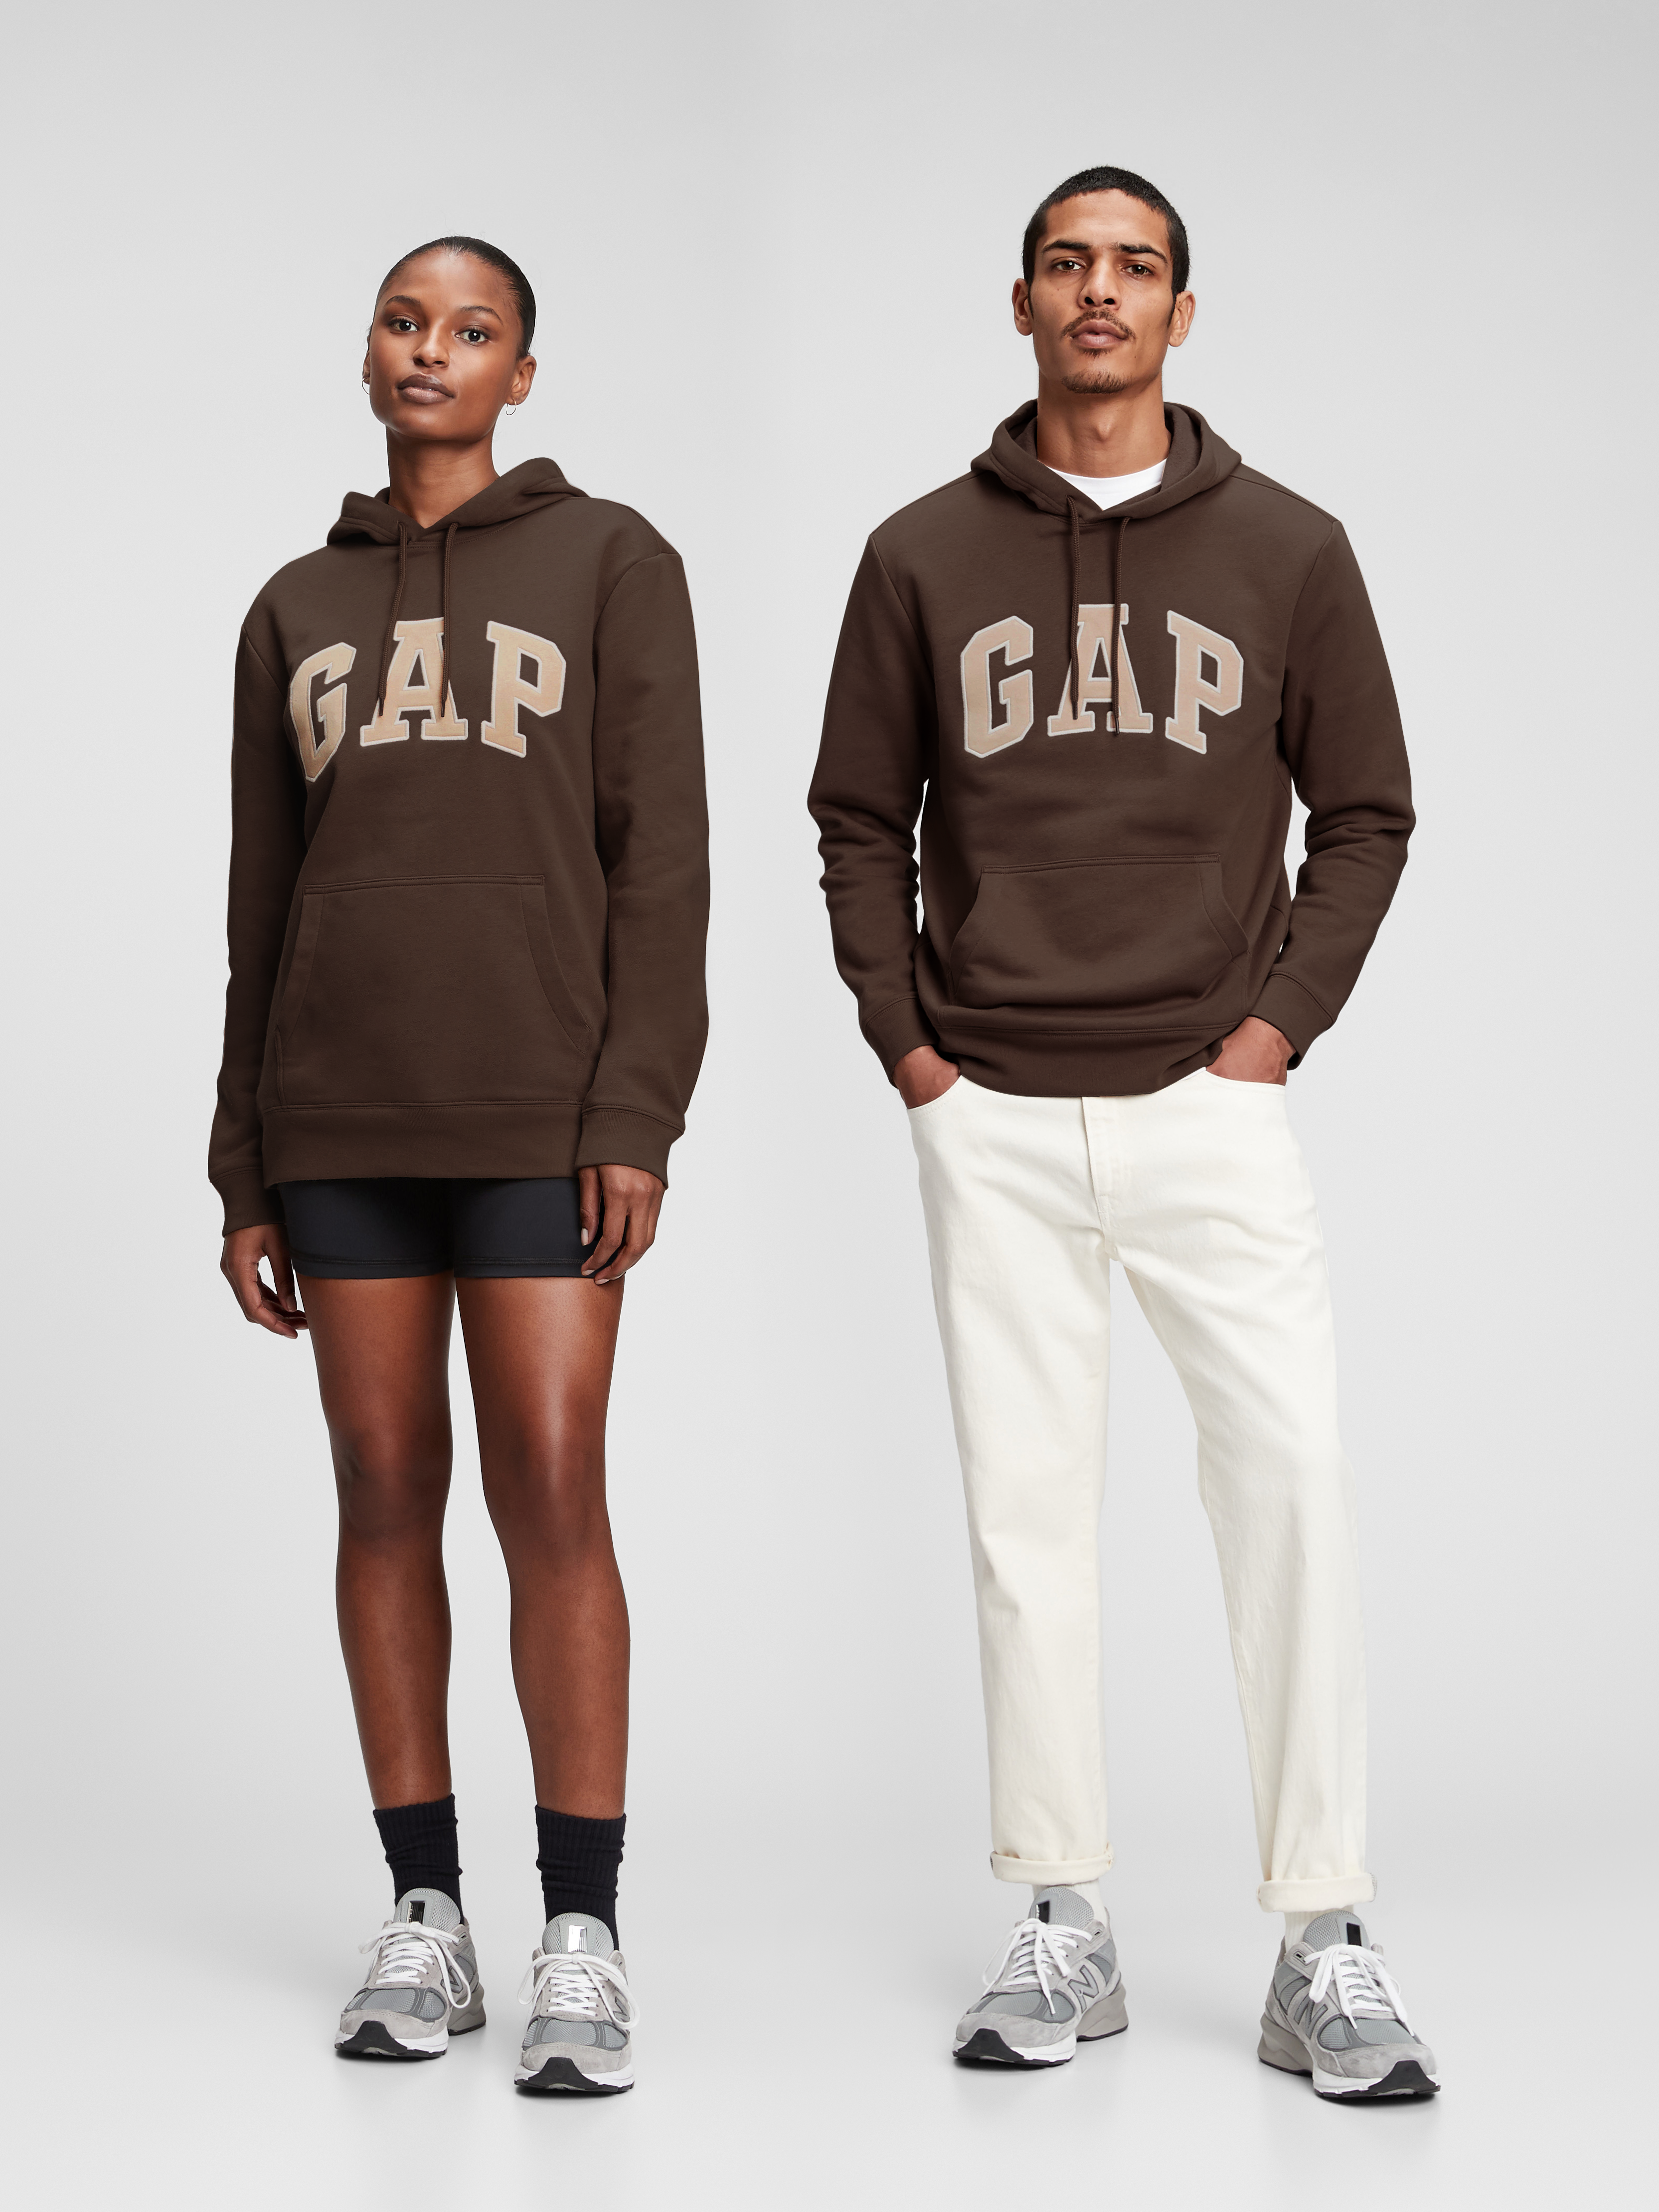 Gap Brown Hoodie Relaunch: How to Buy, What to Know